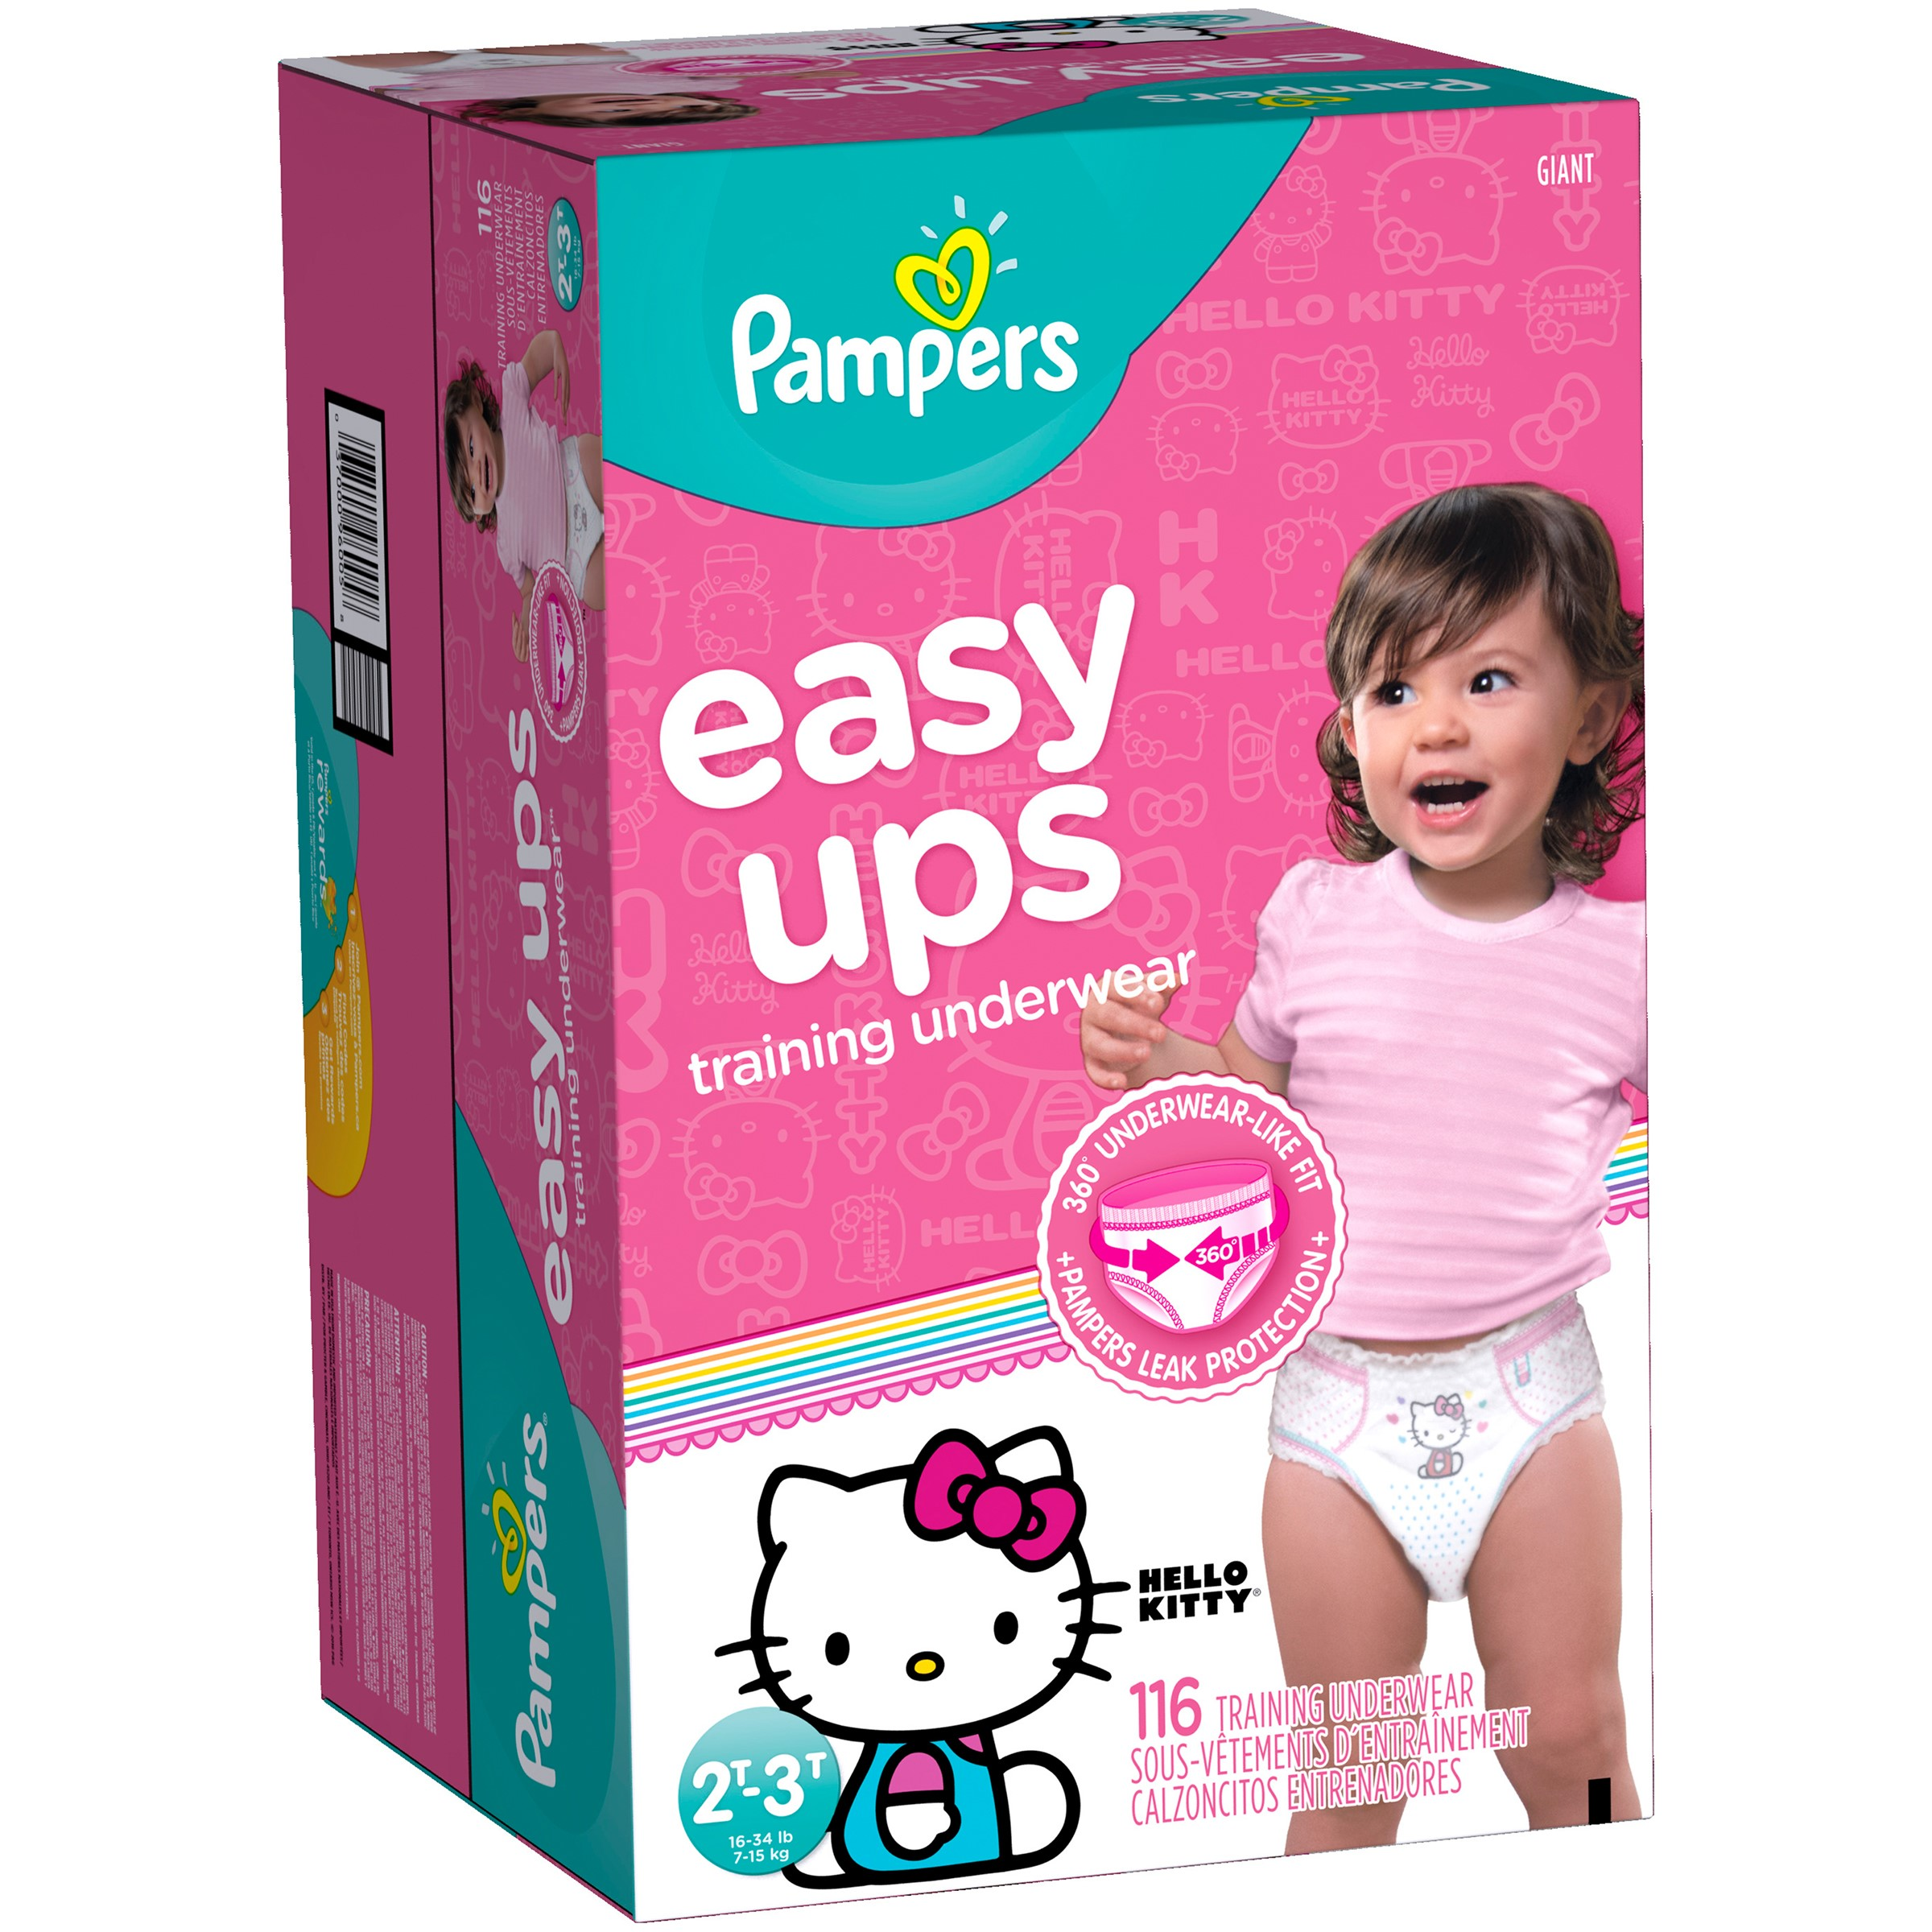 Pampers easy ups girls training pants size 2t 3t 116 pants pampers easy ups girls training pants size 2t 3t 116 pants walmart nvjuhfo Image collections